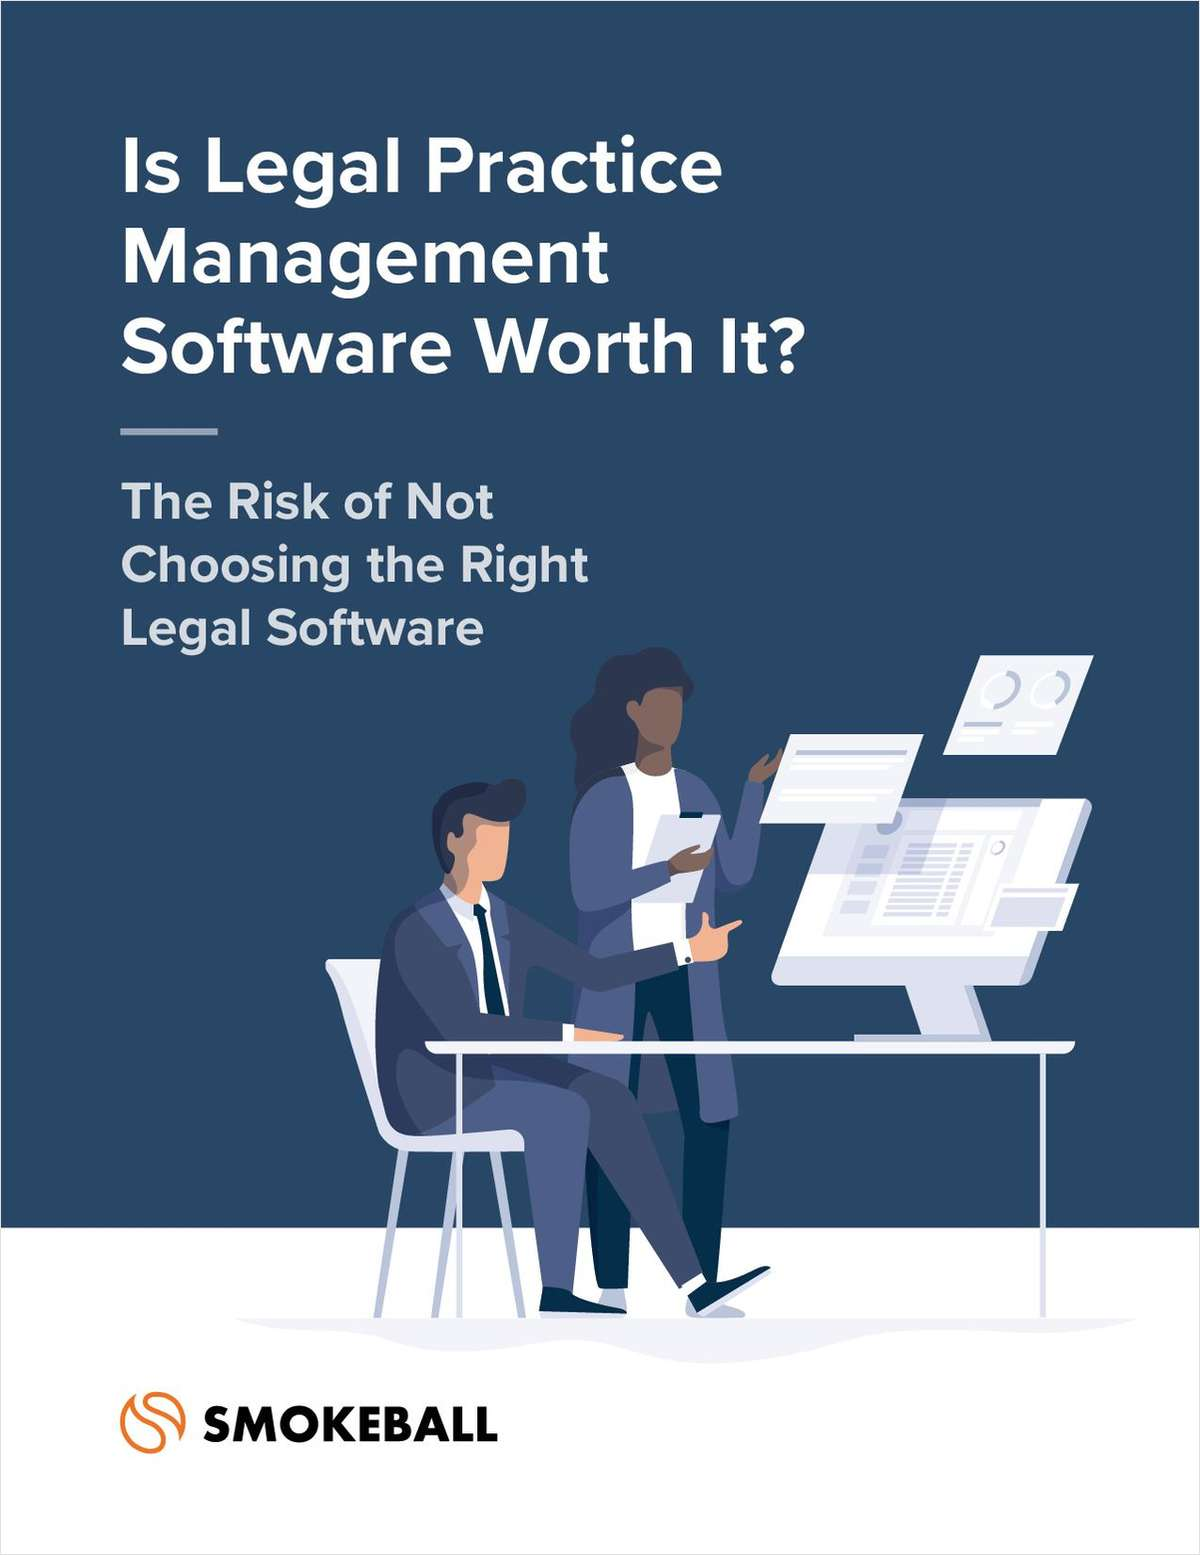 Is Legal Practice Management Software Worth It?